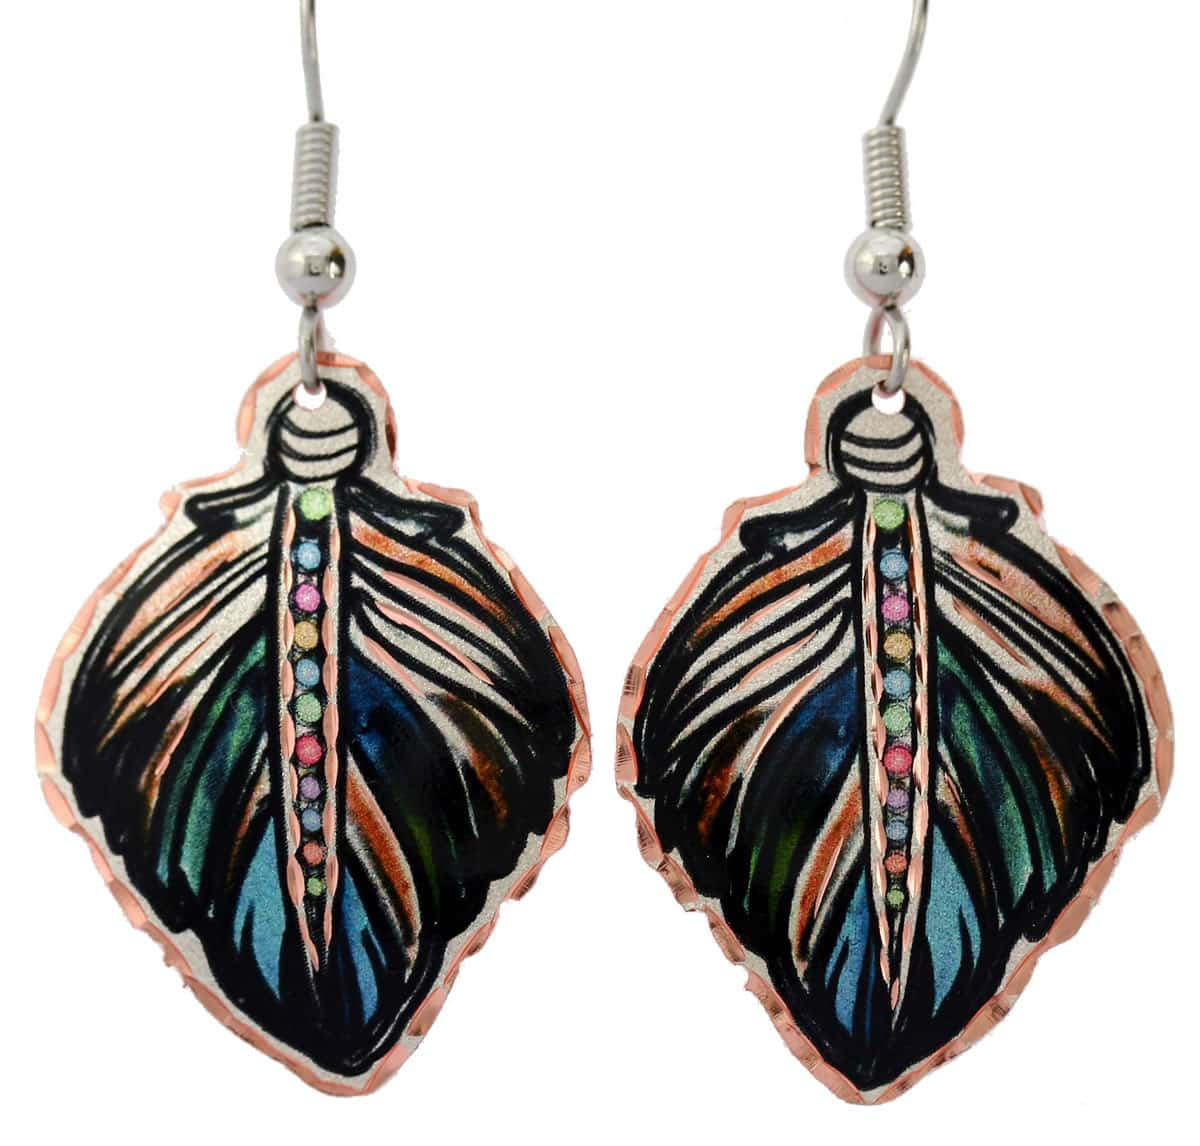 Charming copper feather earrings will evoke delighted admiration